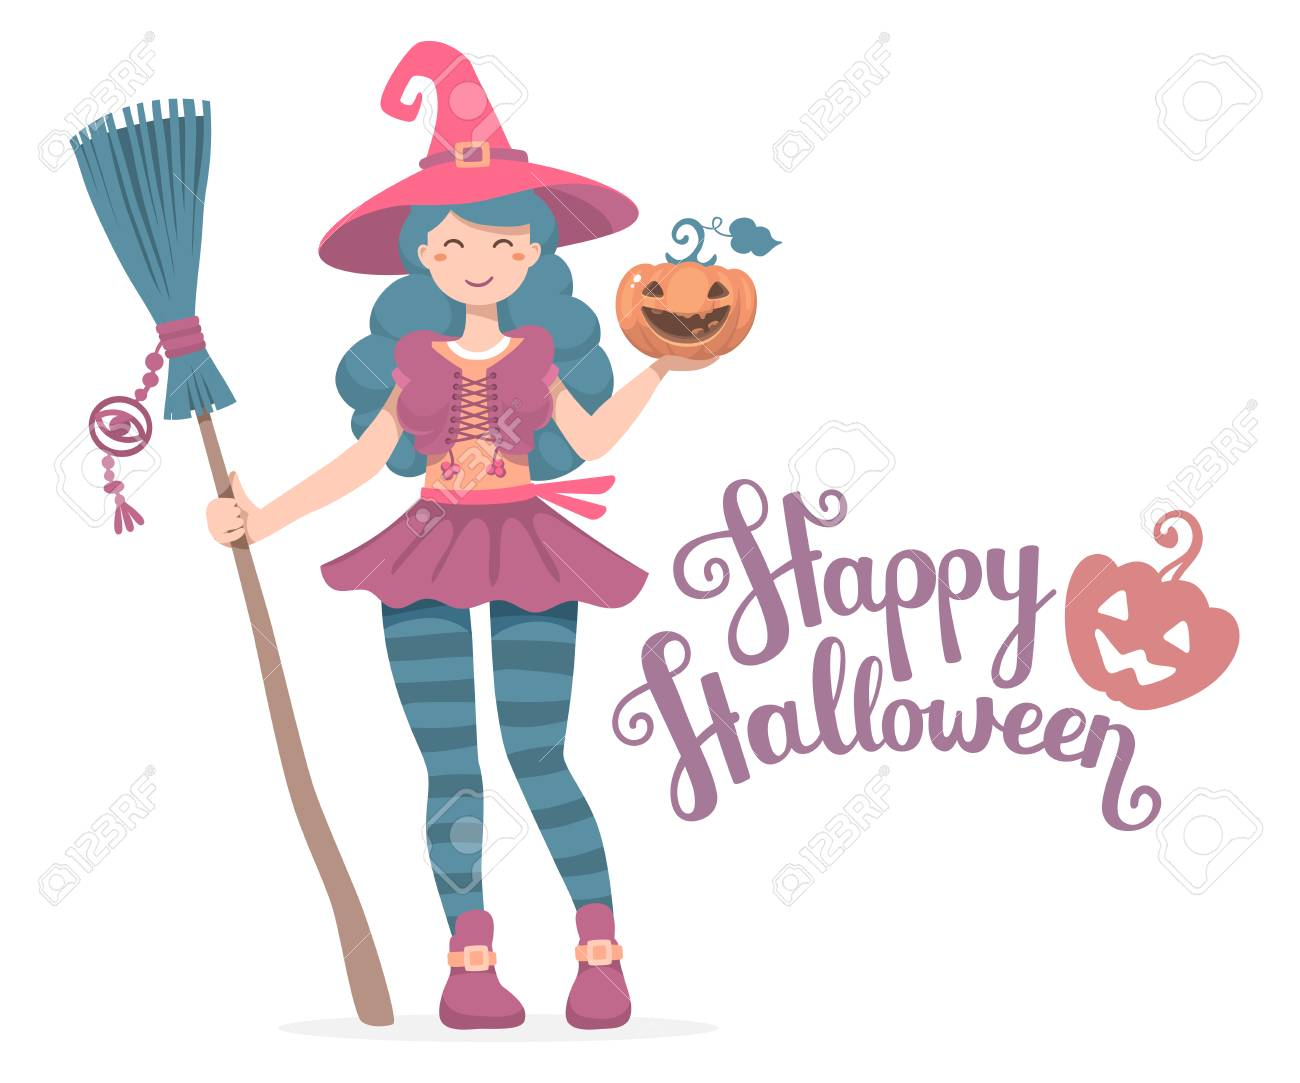 Vector   Vector Colorful Halloween Illustration Of Witch Character With  Broom, Hat, Pumpkin Wishes Happy Halloween On Light Background.